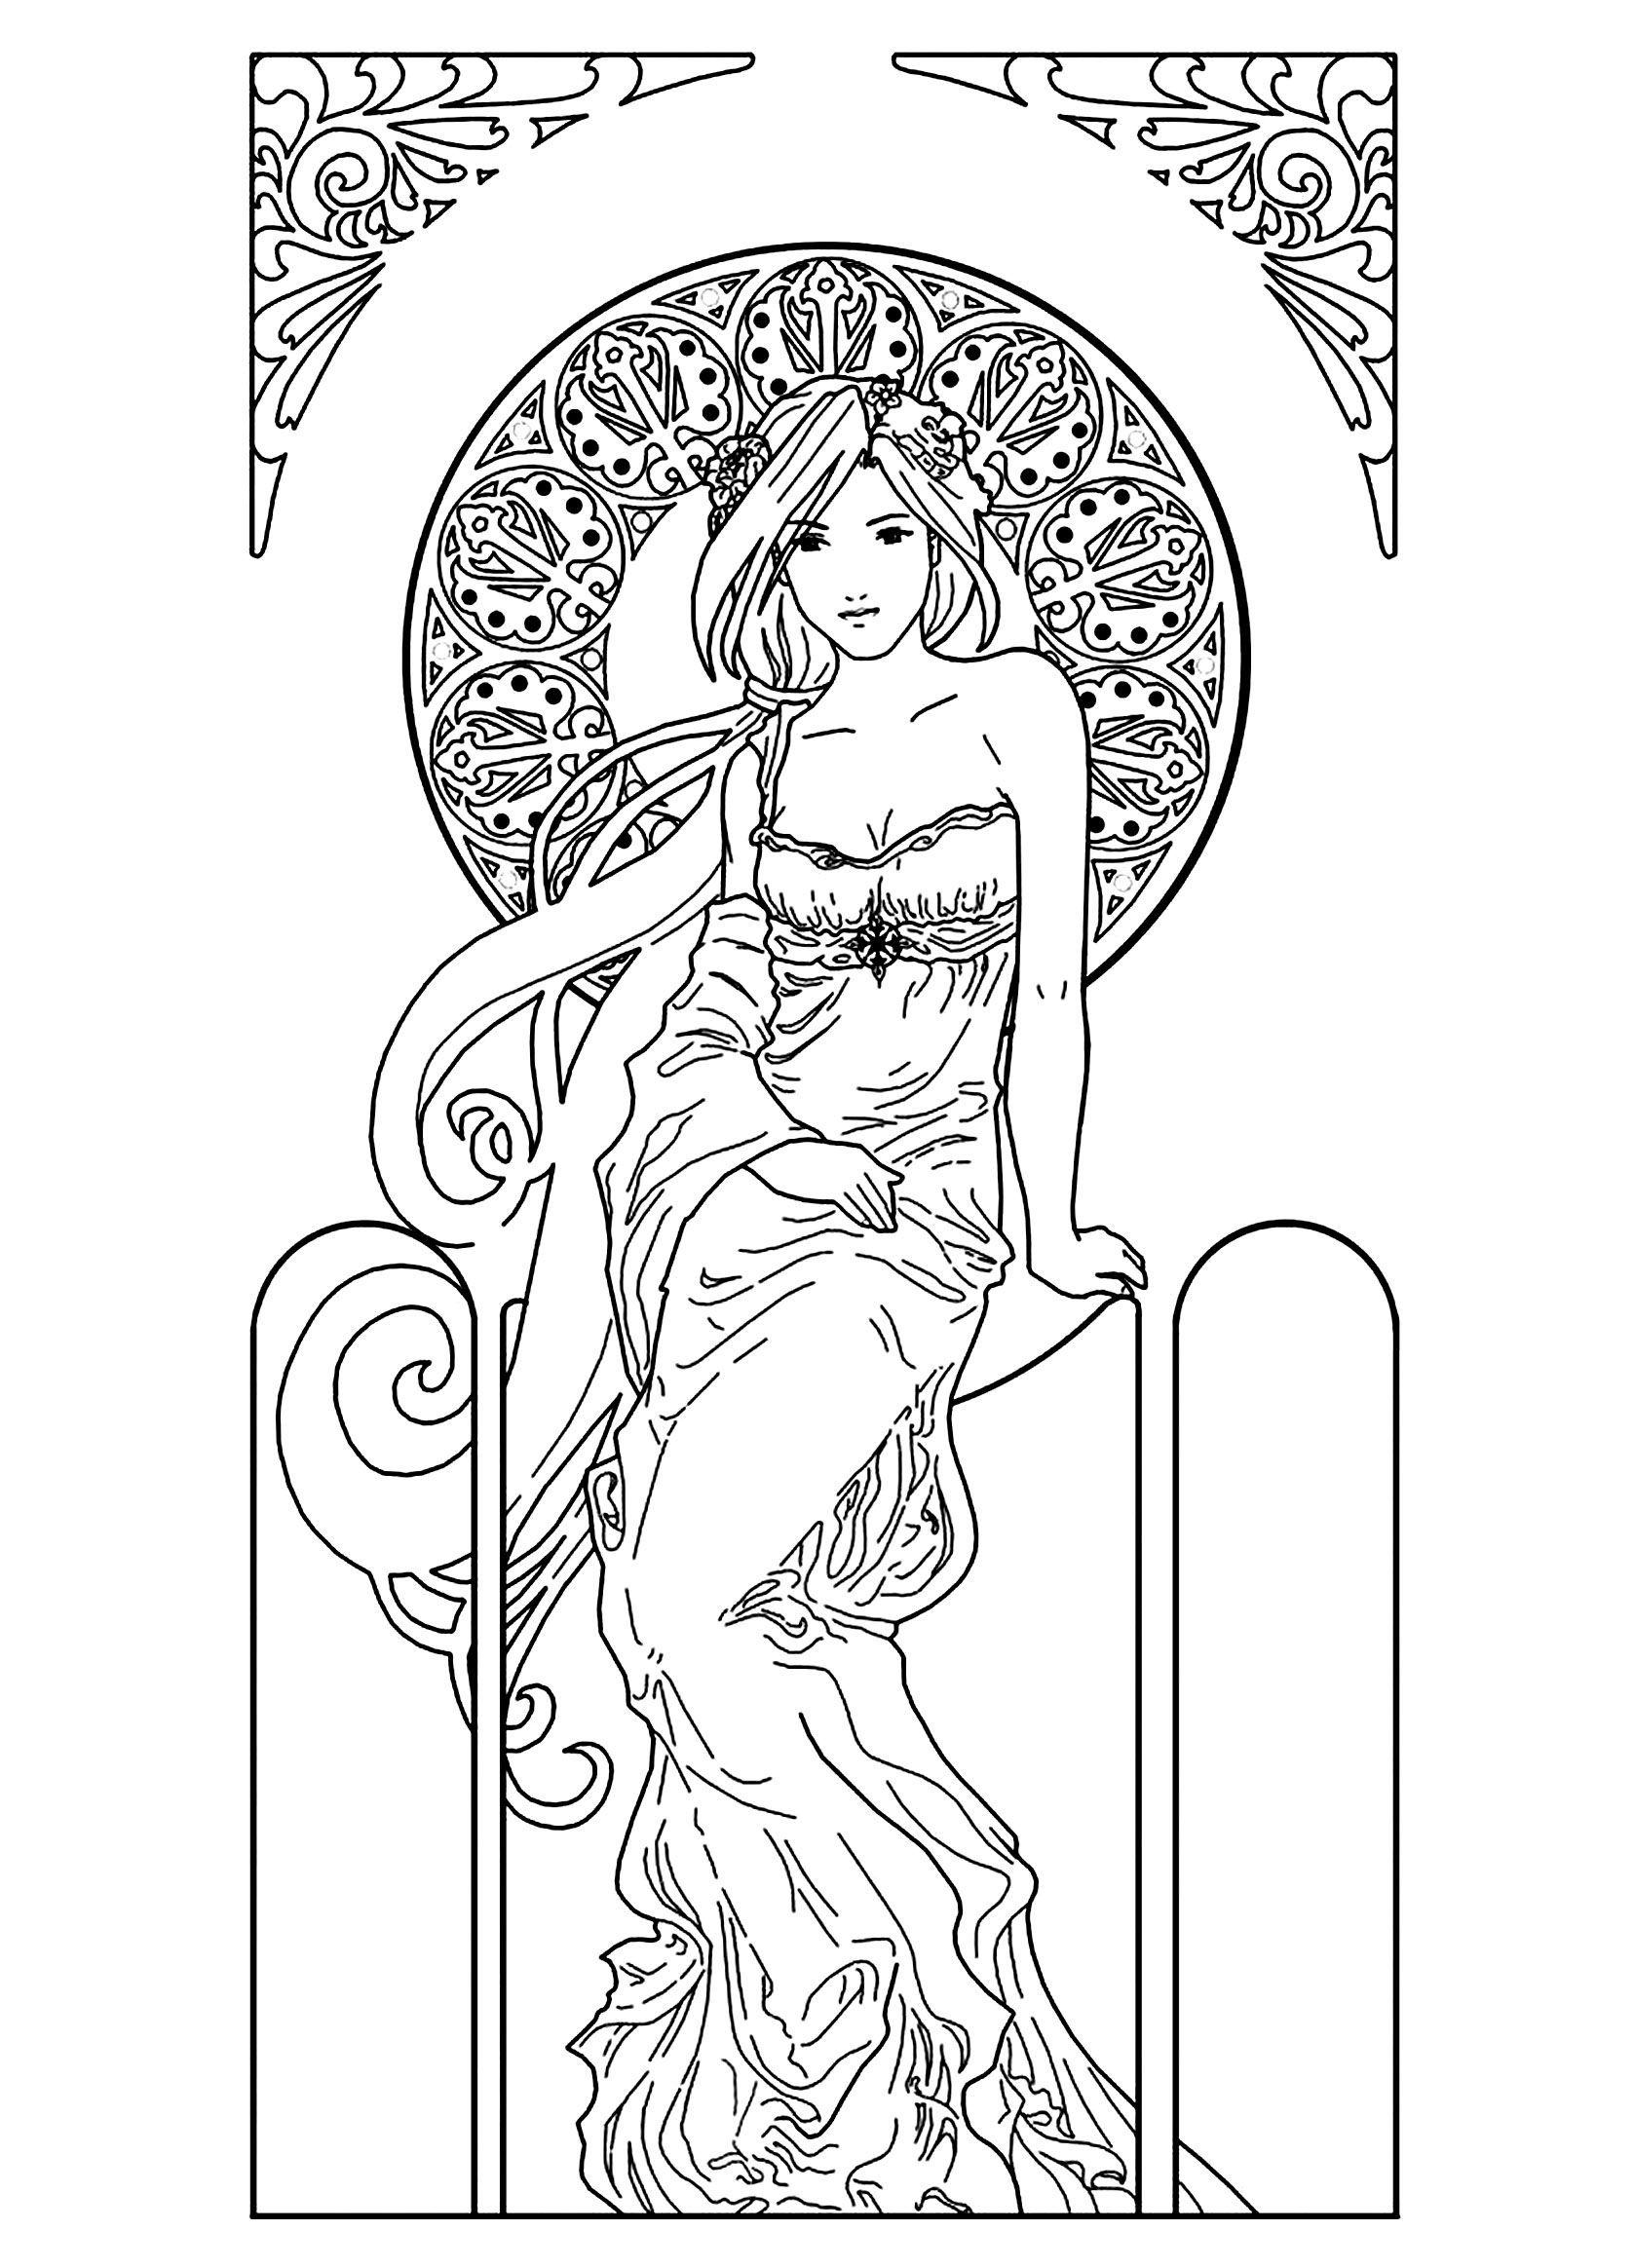 To print this free coloring page «coloring-drawing-woman-inspiration ...